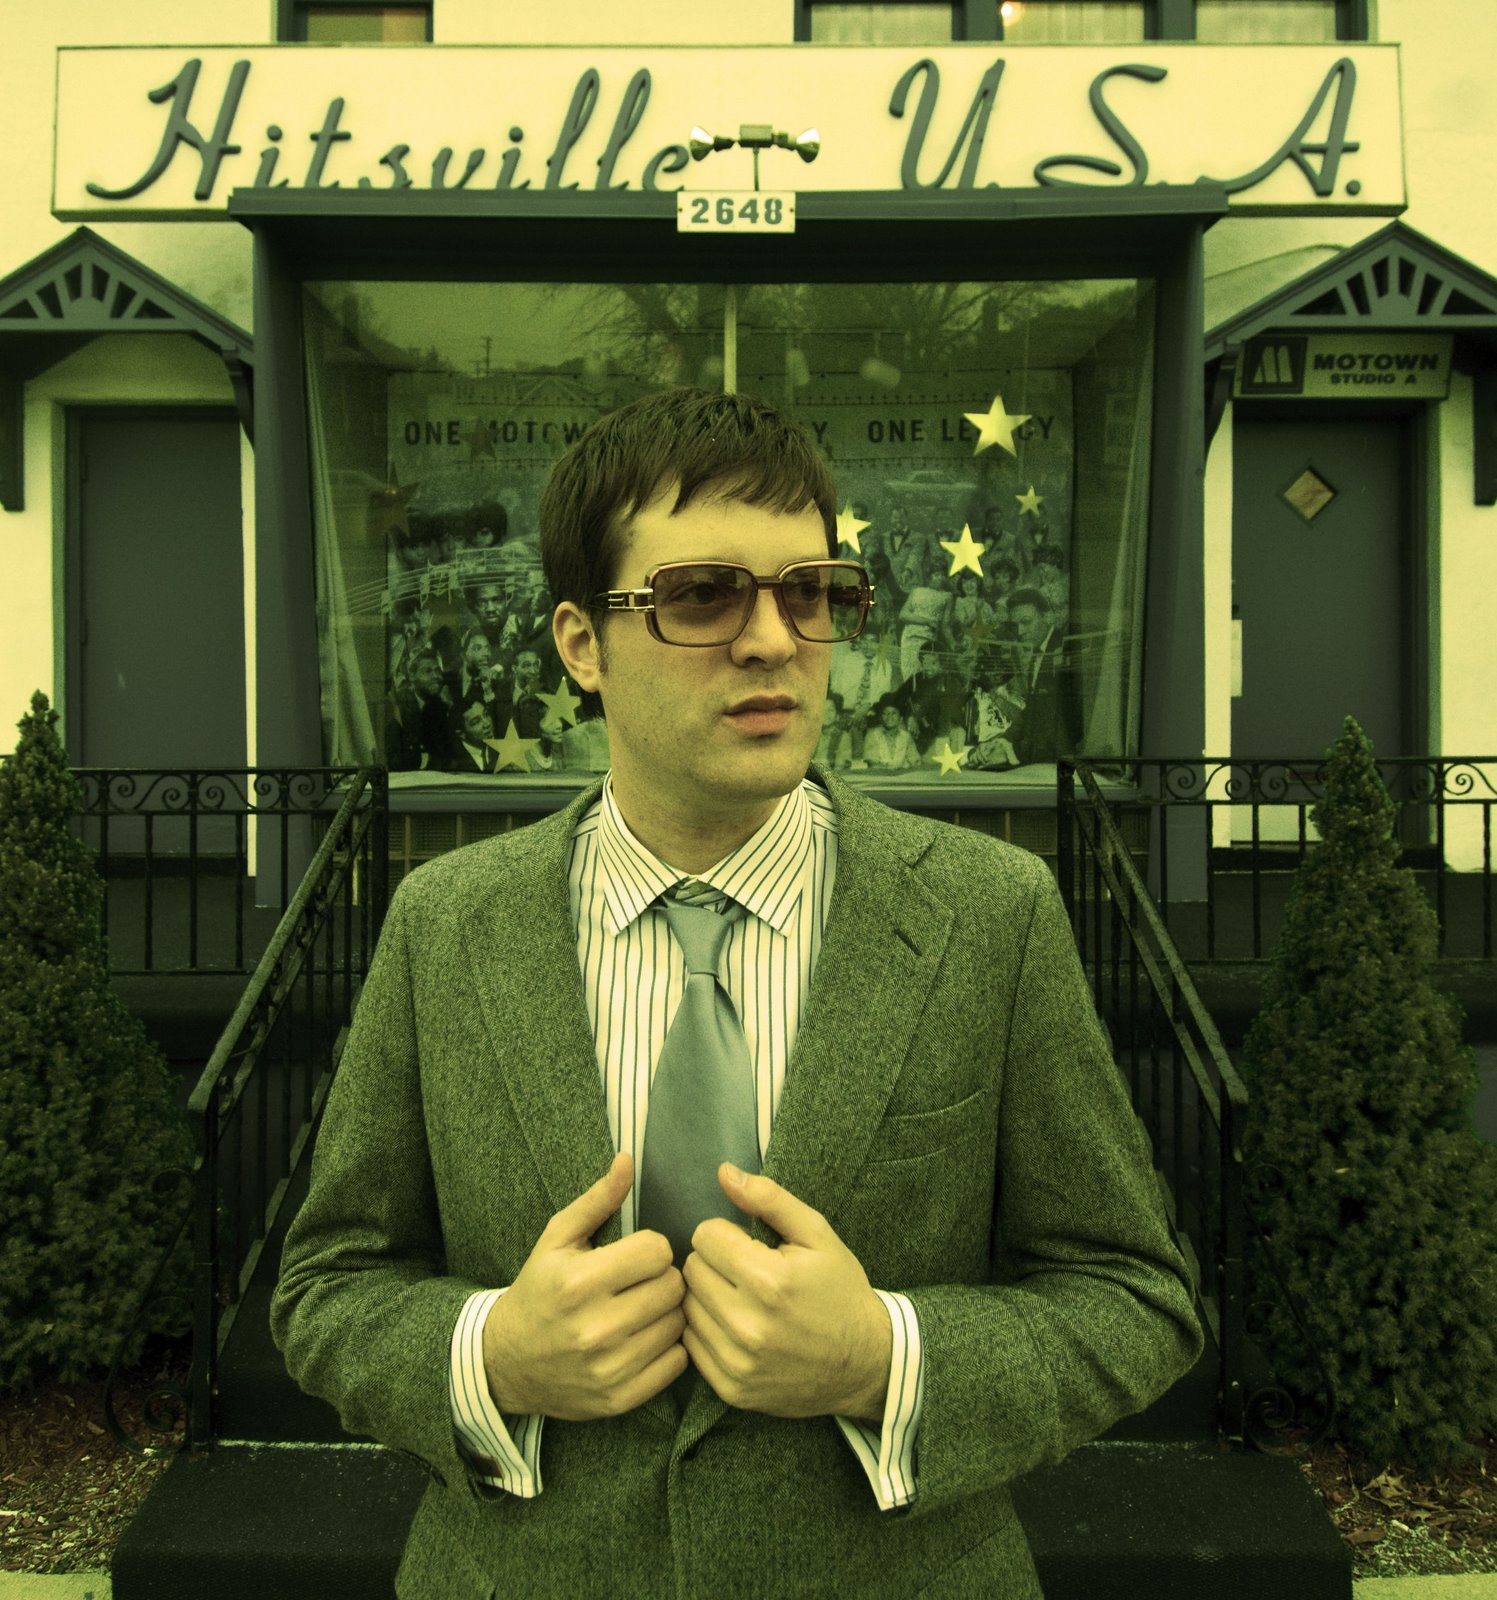 mayer_hawthorne_02_dusted_-_dmc_02281